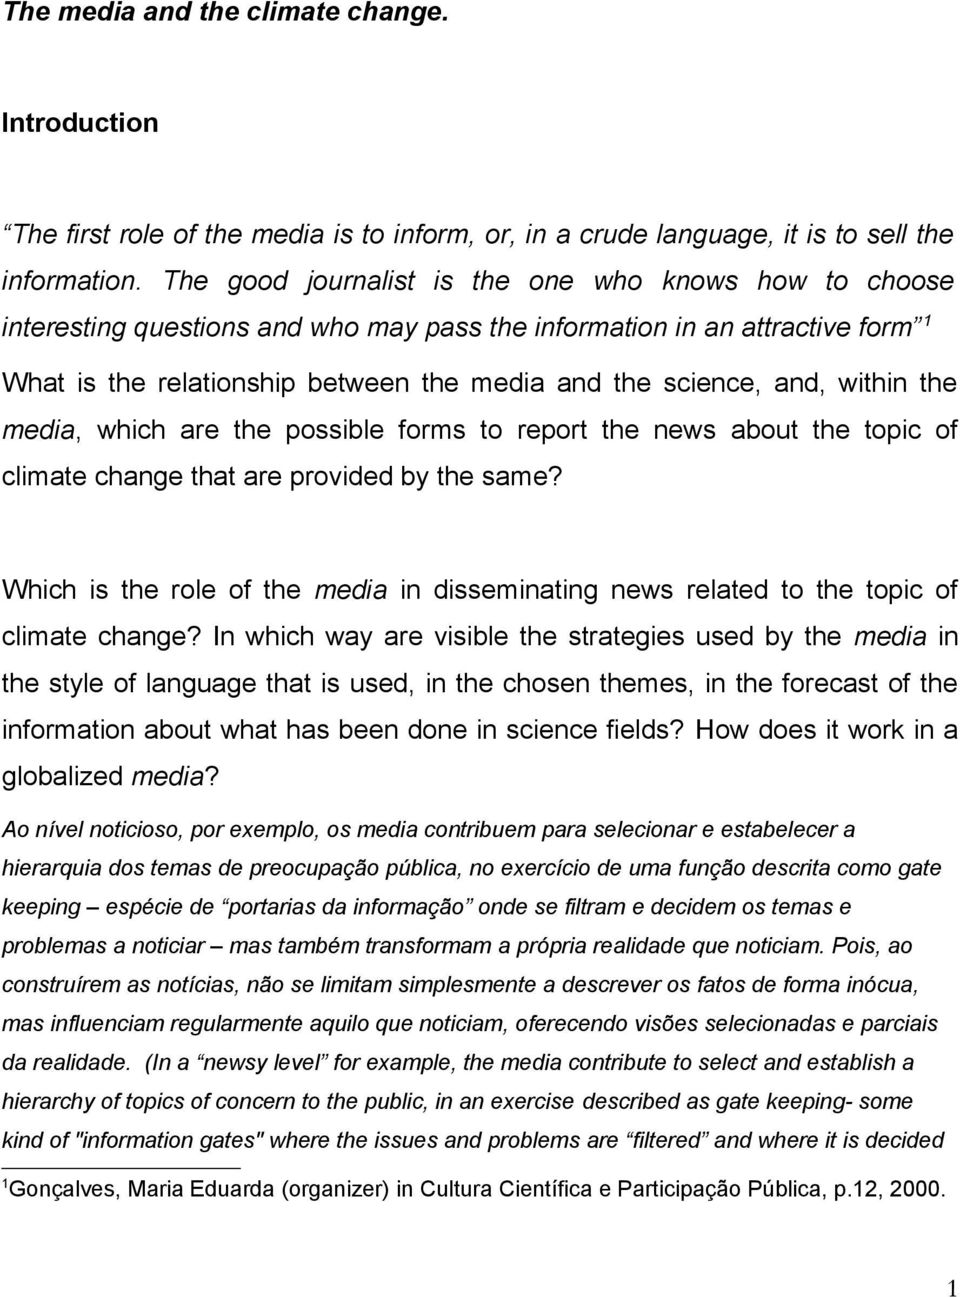 within the media, which are the possible forms to report the news about the topic of climate change that are provided by the same?